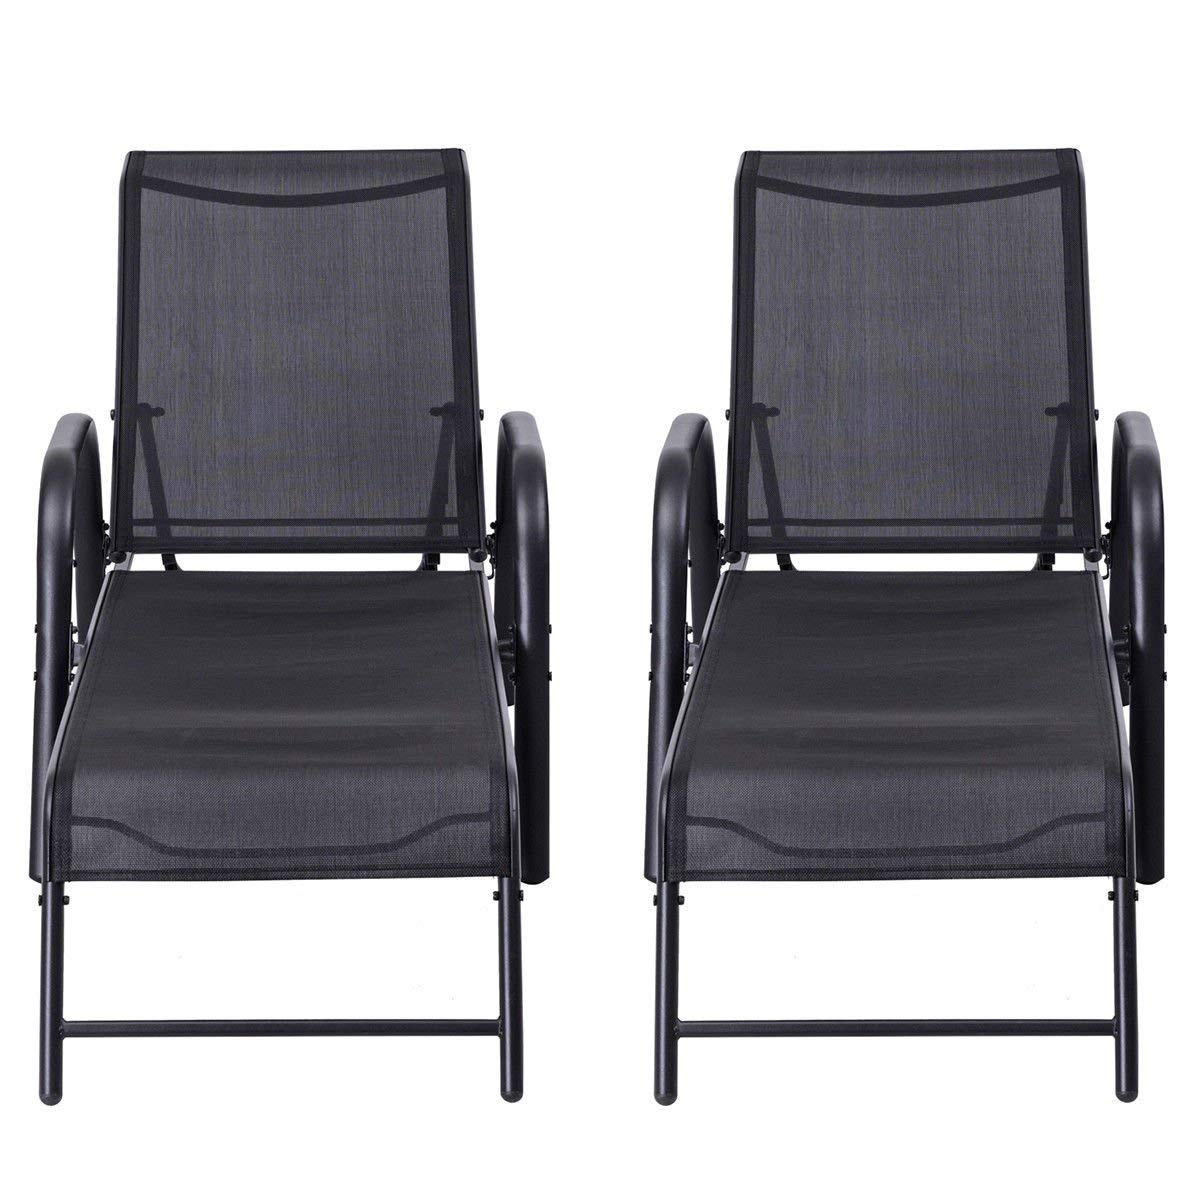 what are pool chairs made out of tatamia high chair cheap chaise find deals on line at kchex set 2 patio lounge sling lounges recliner adjustable back new